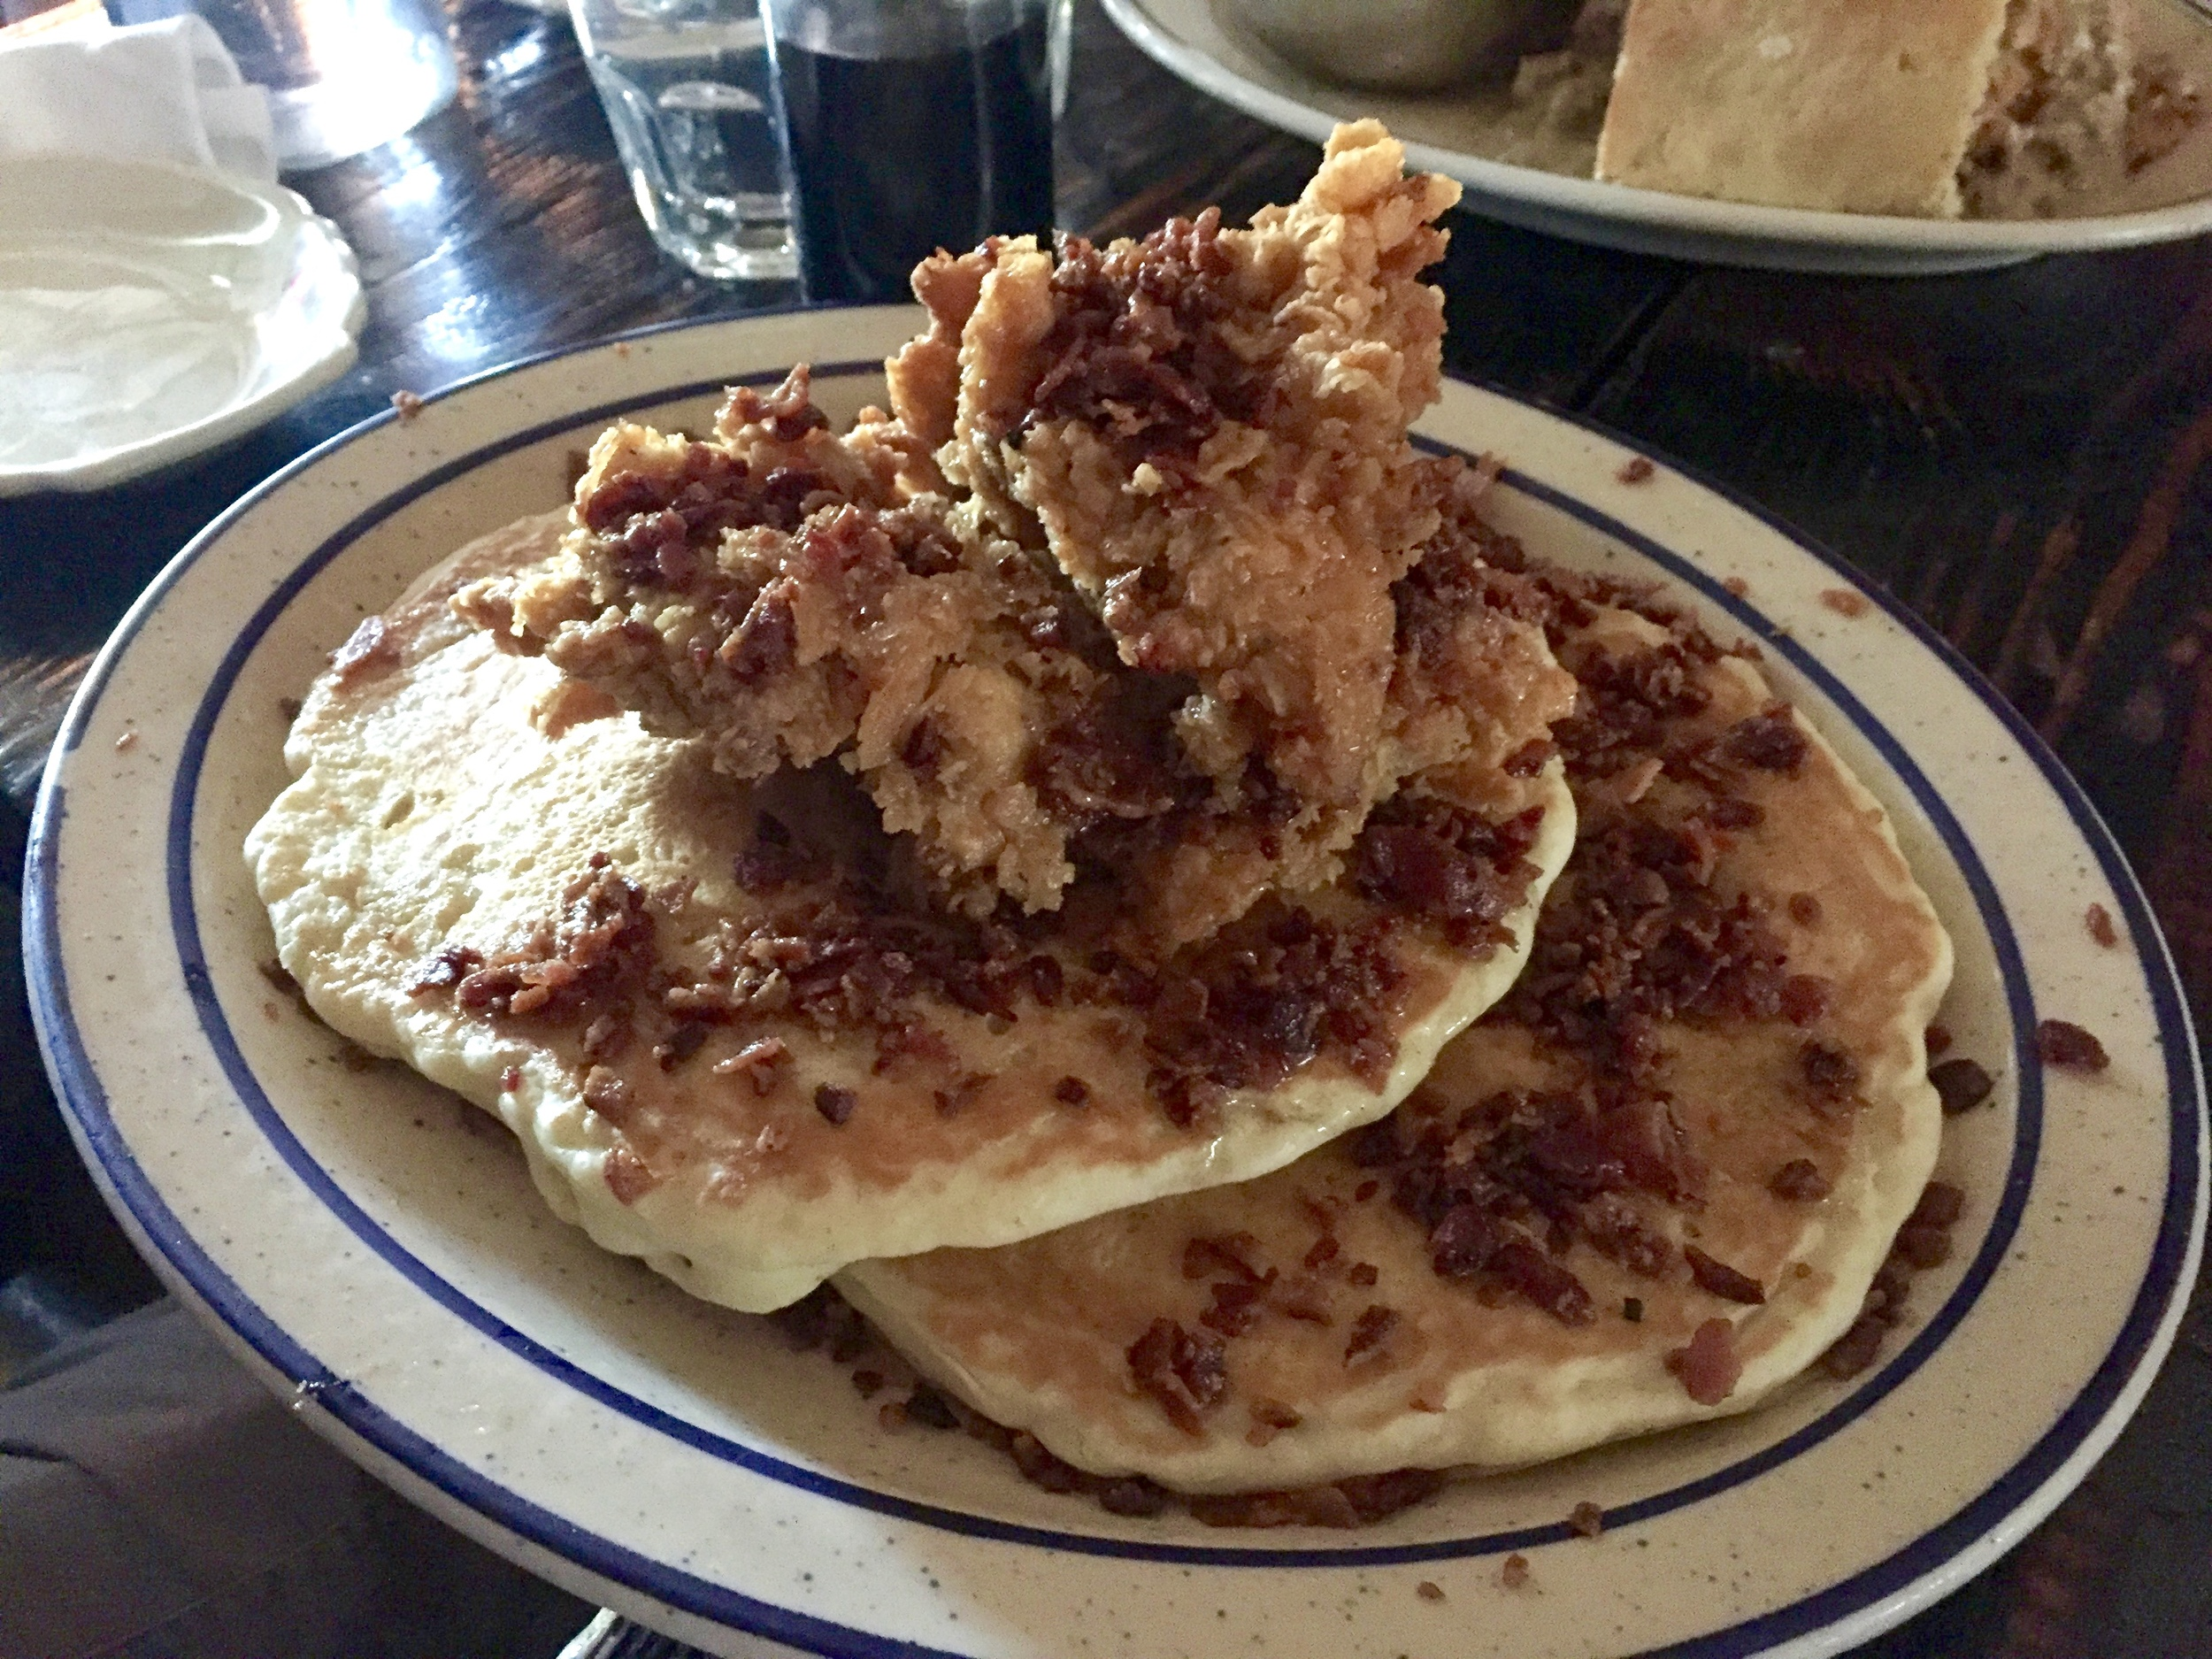 Fried chicken, bacon, and pancakes